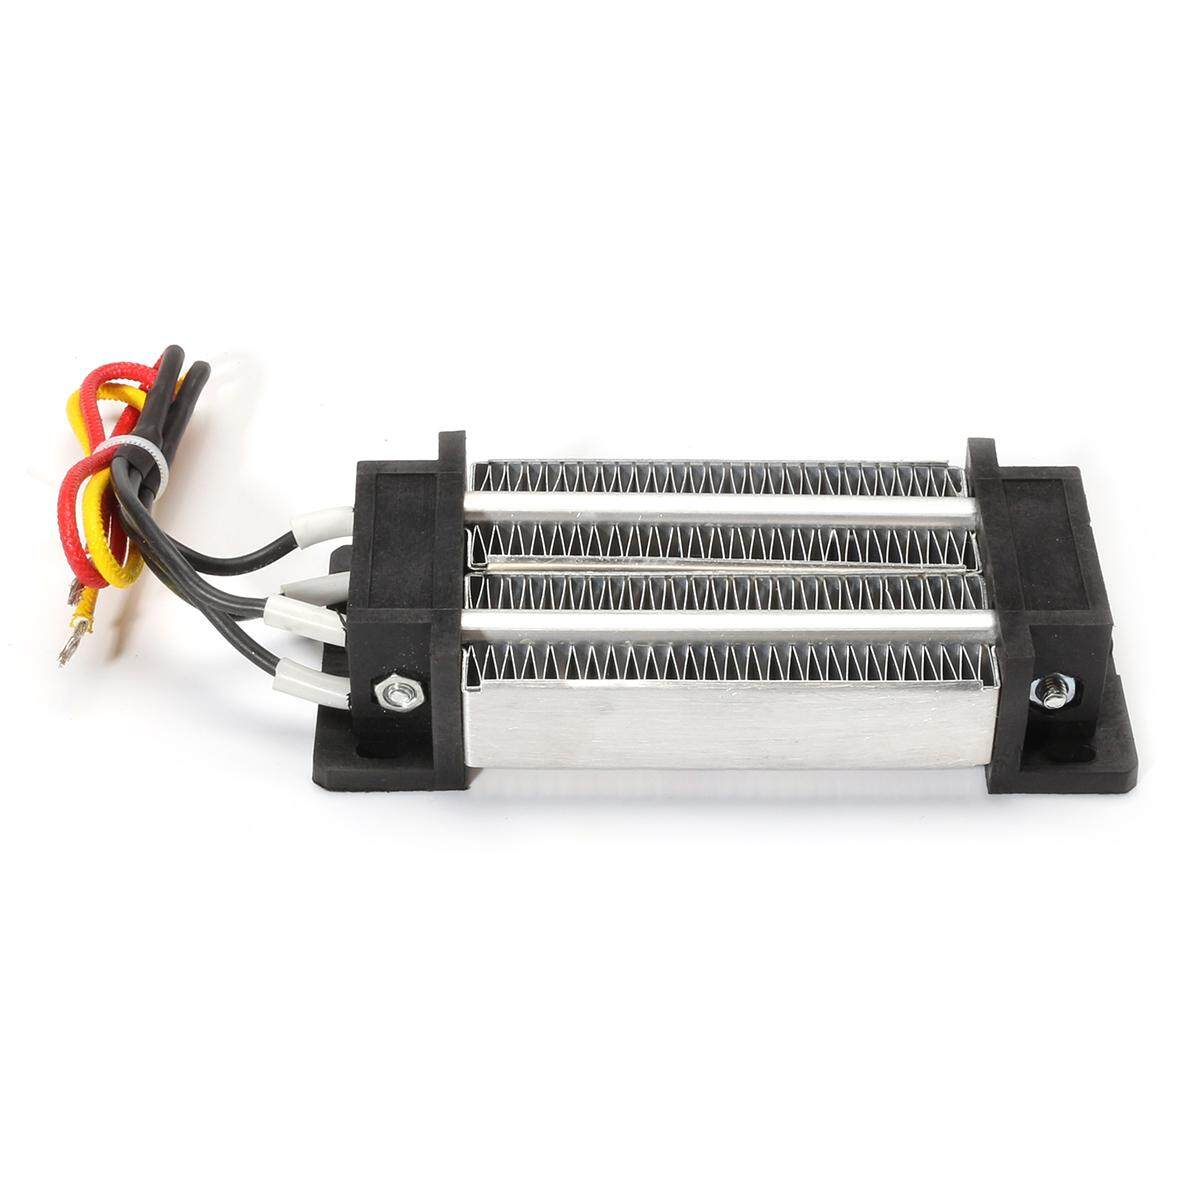 Voltage 12V200W brooder ✔ ✔ ✔ ✔ ✔ ✔ The heater for the incubator AC // DC